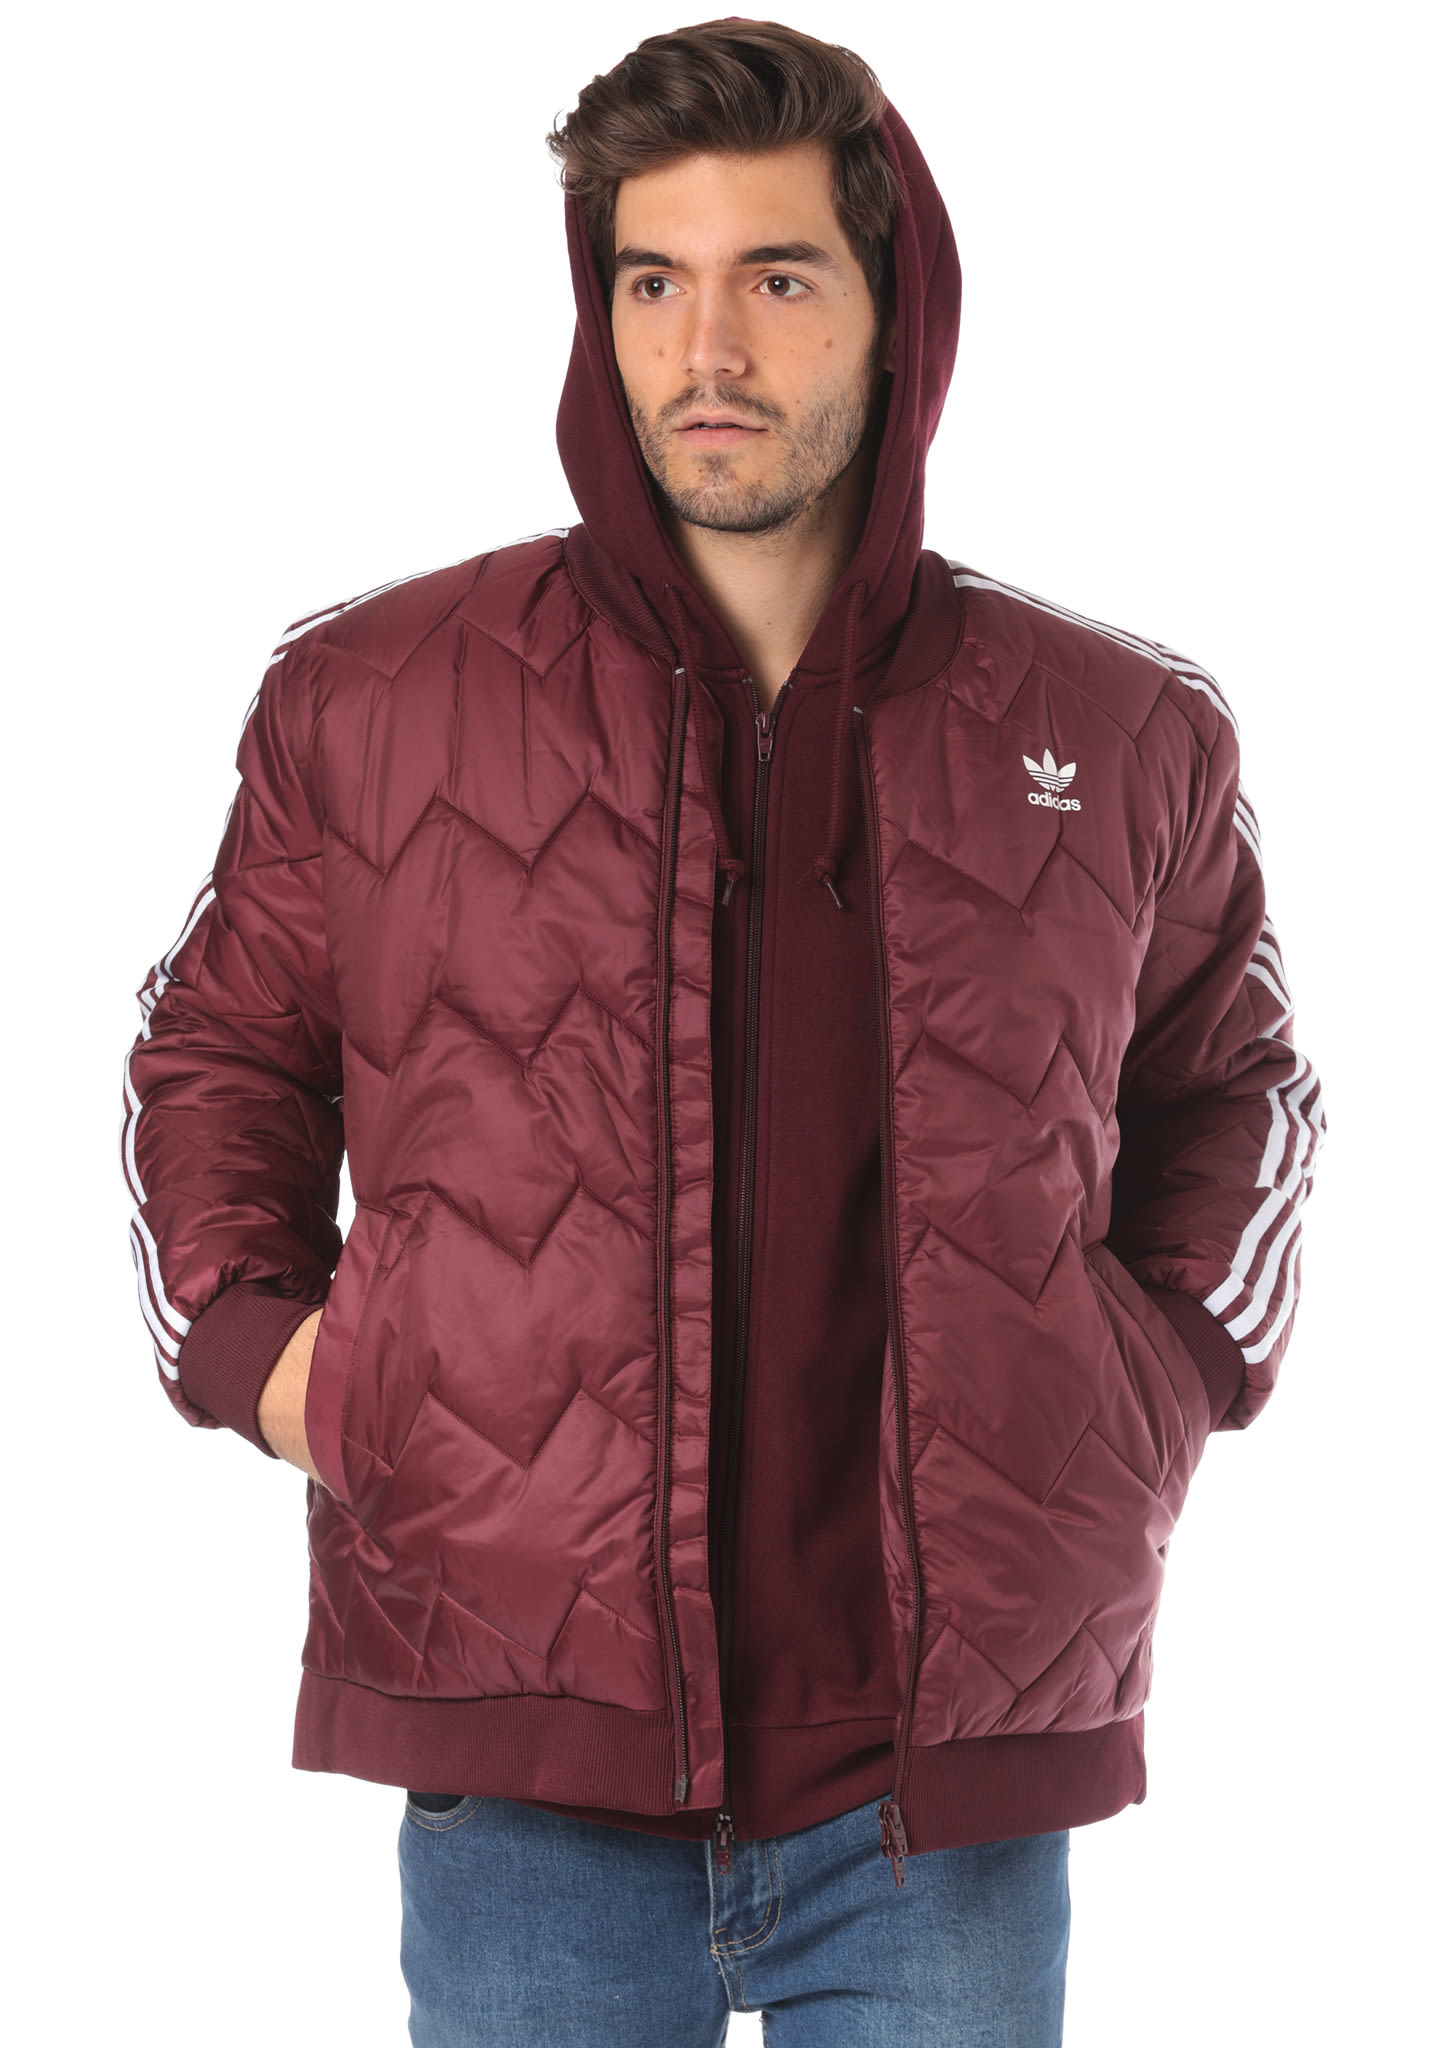 Per Sst Rosso Adidas Giacca Originals Planet Quilted Uomo Sports rqqCP6I